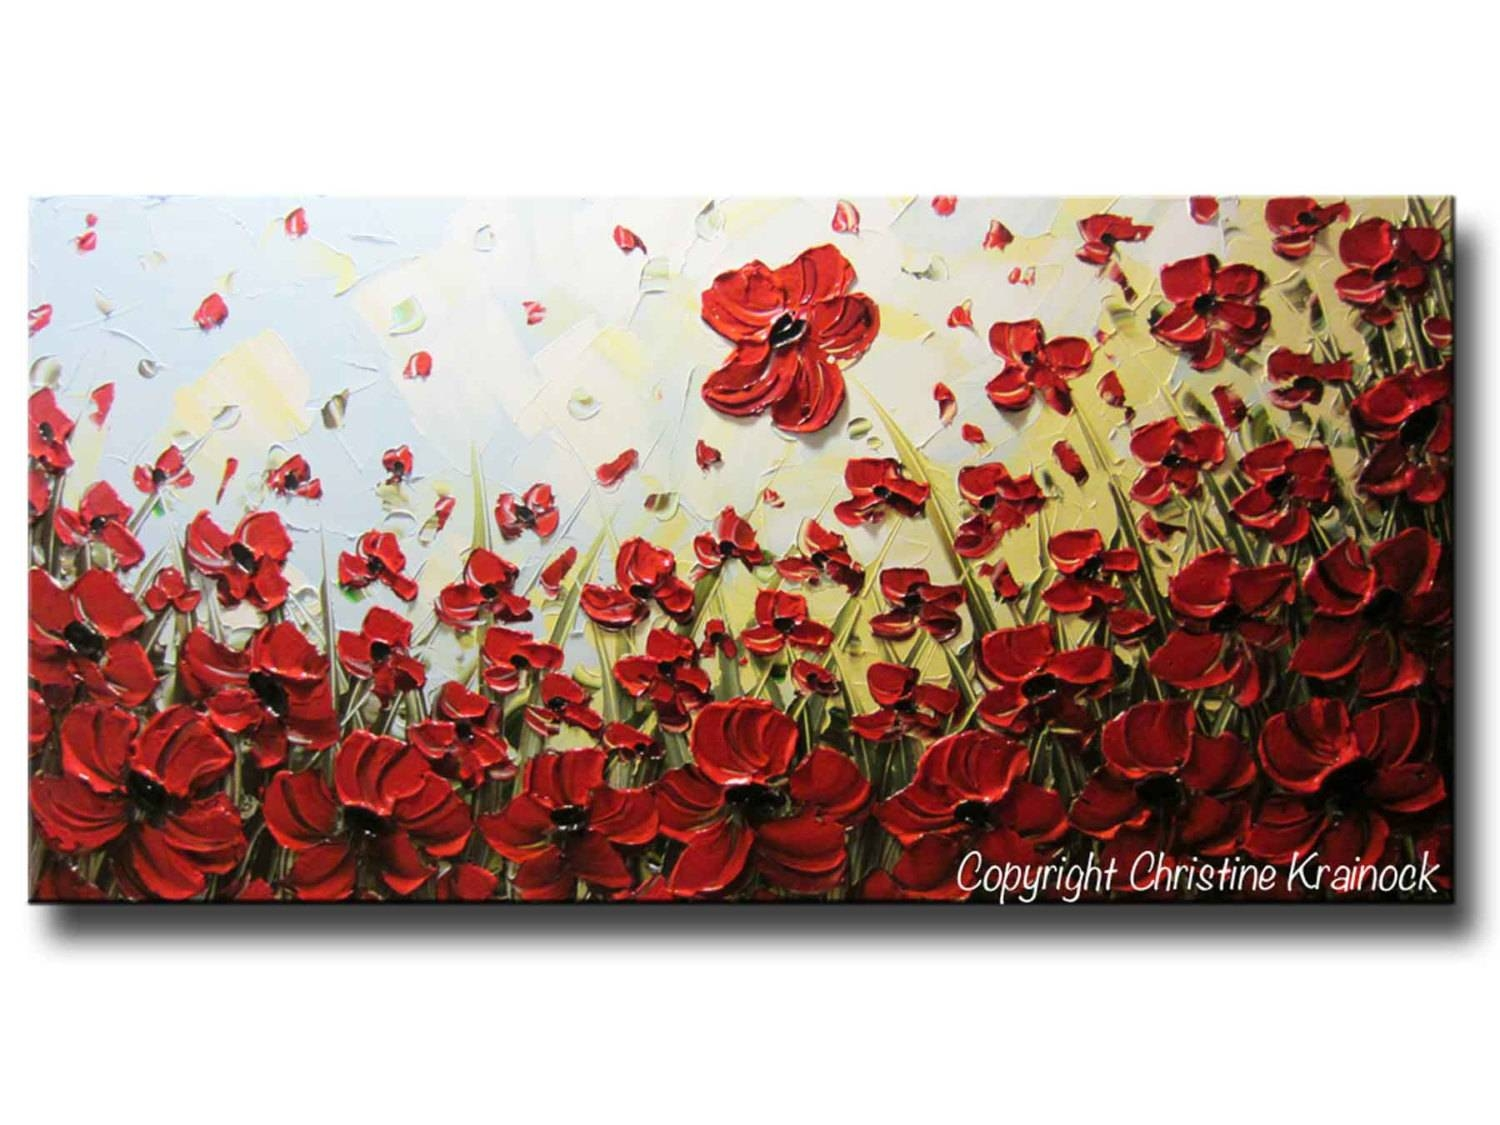 Custom Art Abstract Painting Red Poppy Flowers Large Art Pertaining To Most Up To Date Red Poppy Canvas Wall Art (View 6 of 20)